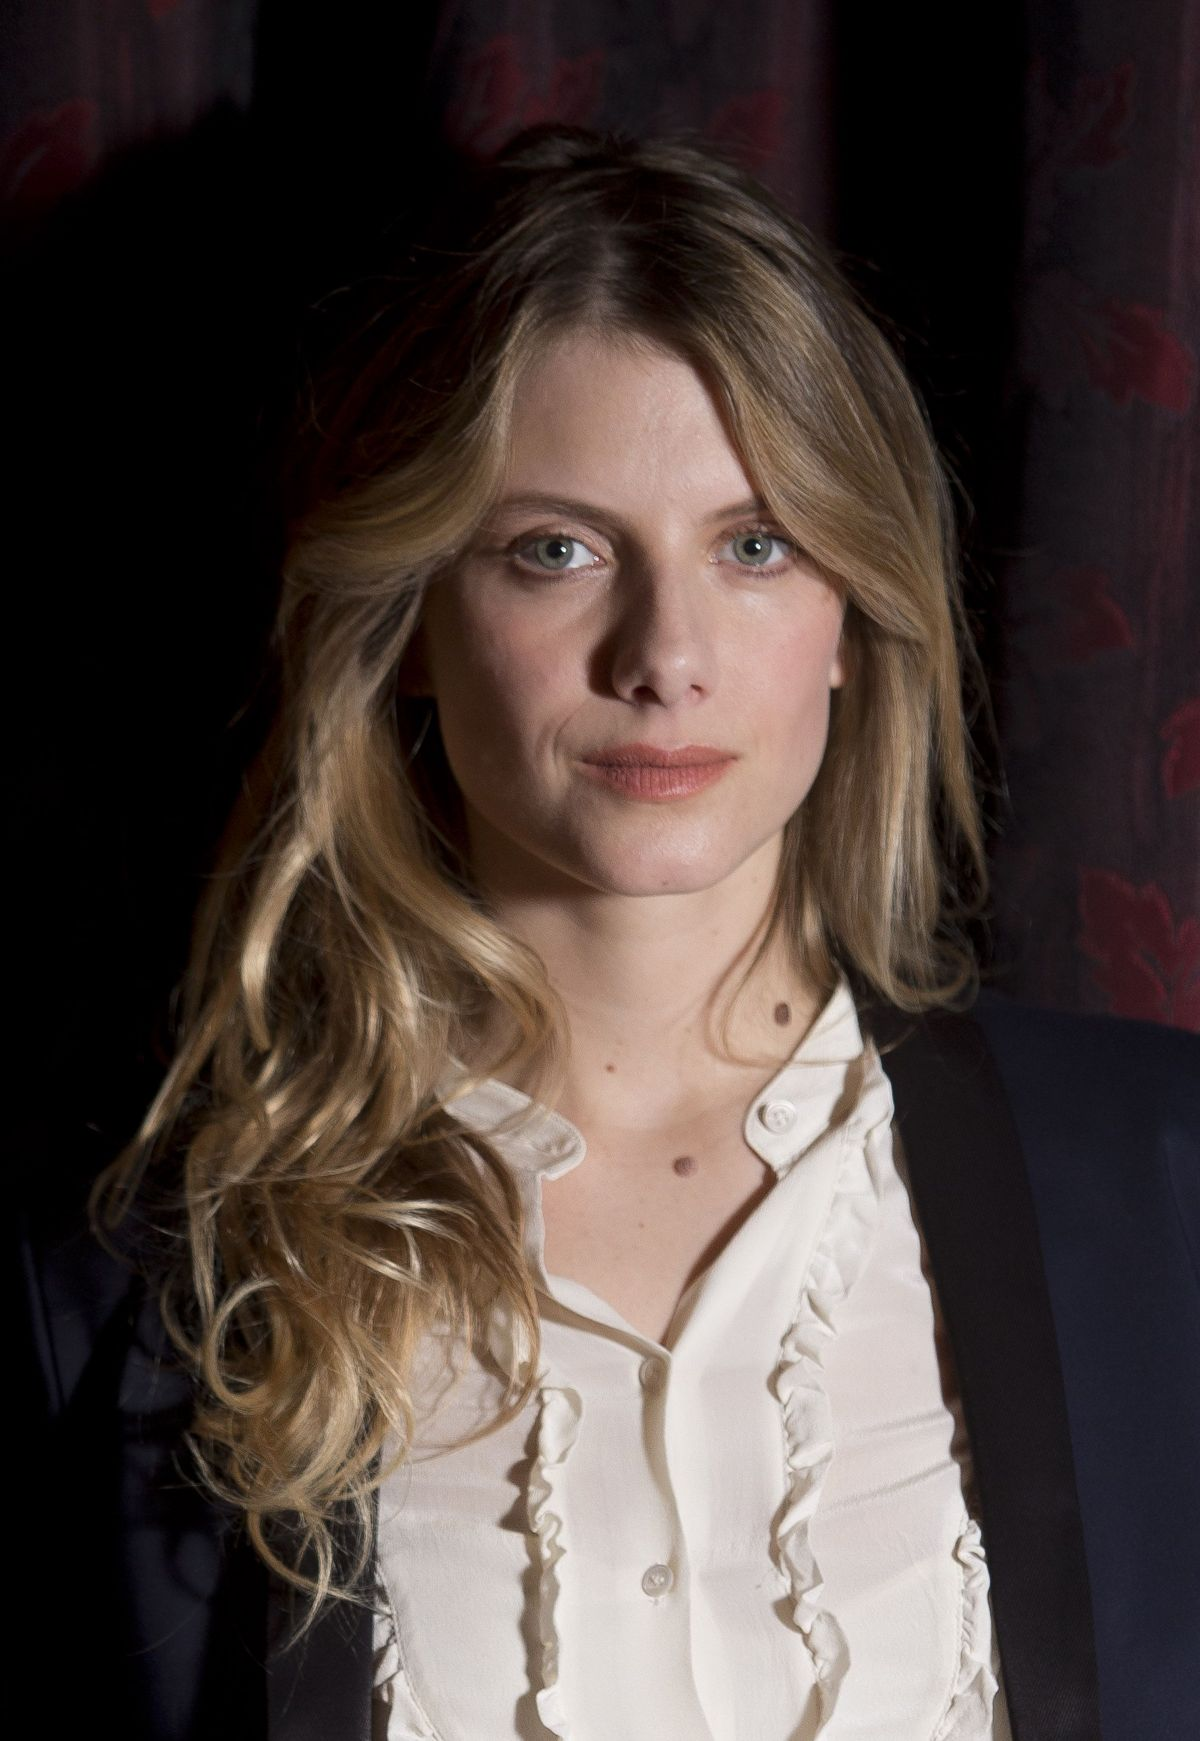 MELANIE LAURENT at Aloft Portrait Sesion at 64th International Film Festival in Berlin